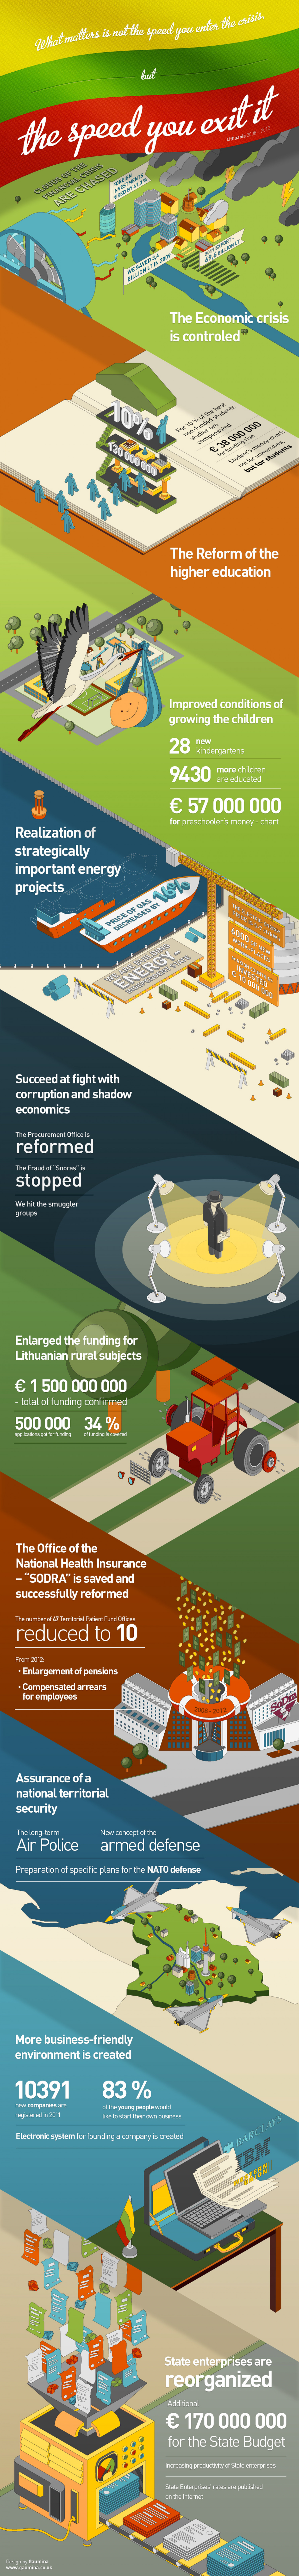 Lithuania has conquered crisis Infographic